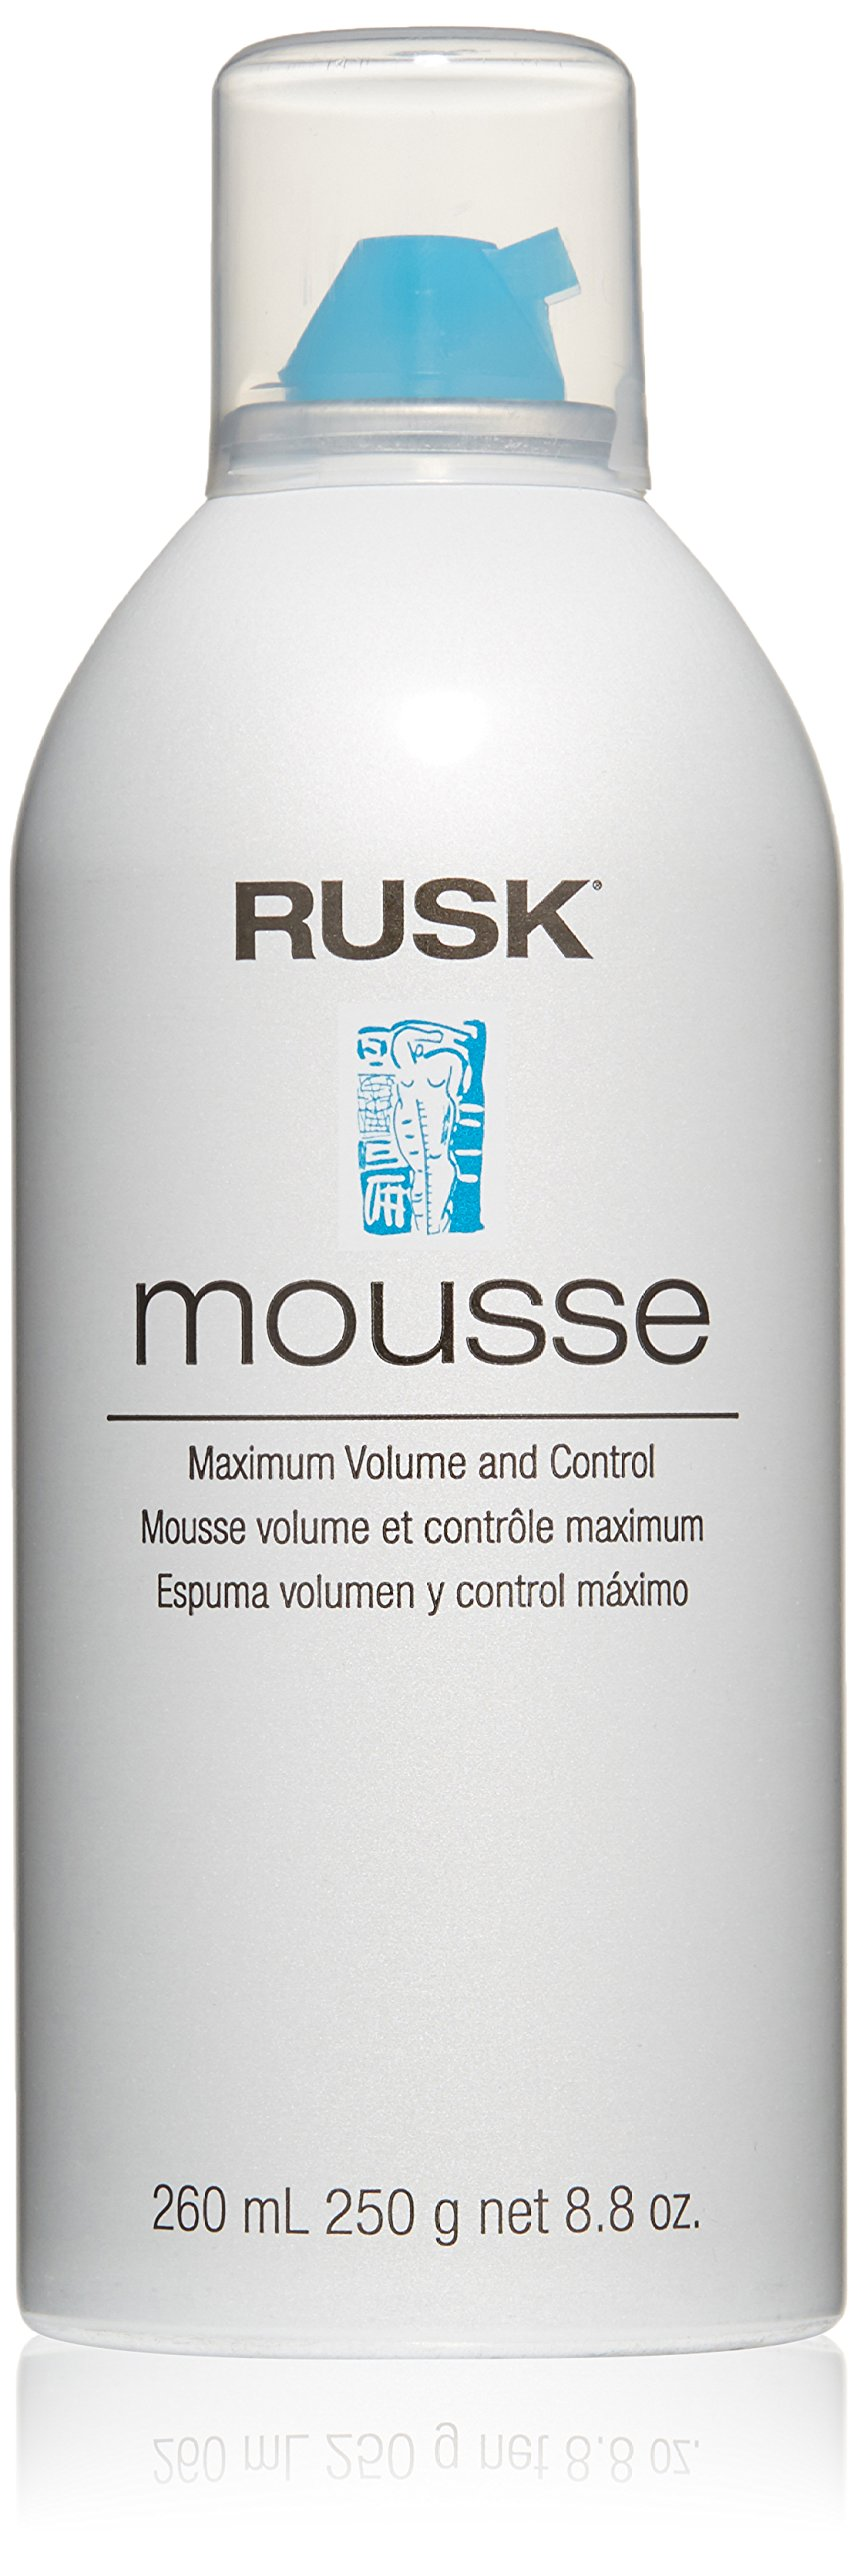 RUSK Designer Collection Mousse Maximum Volume and Control, 8.8 oz. by RUSK